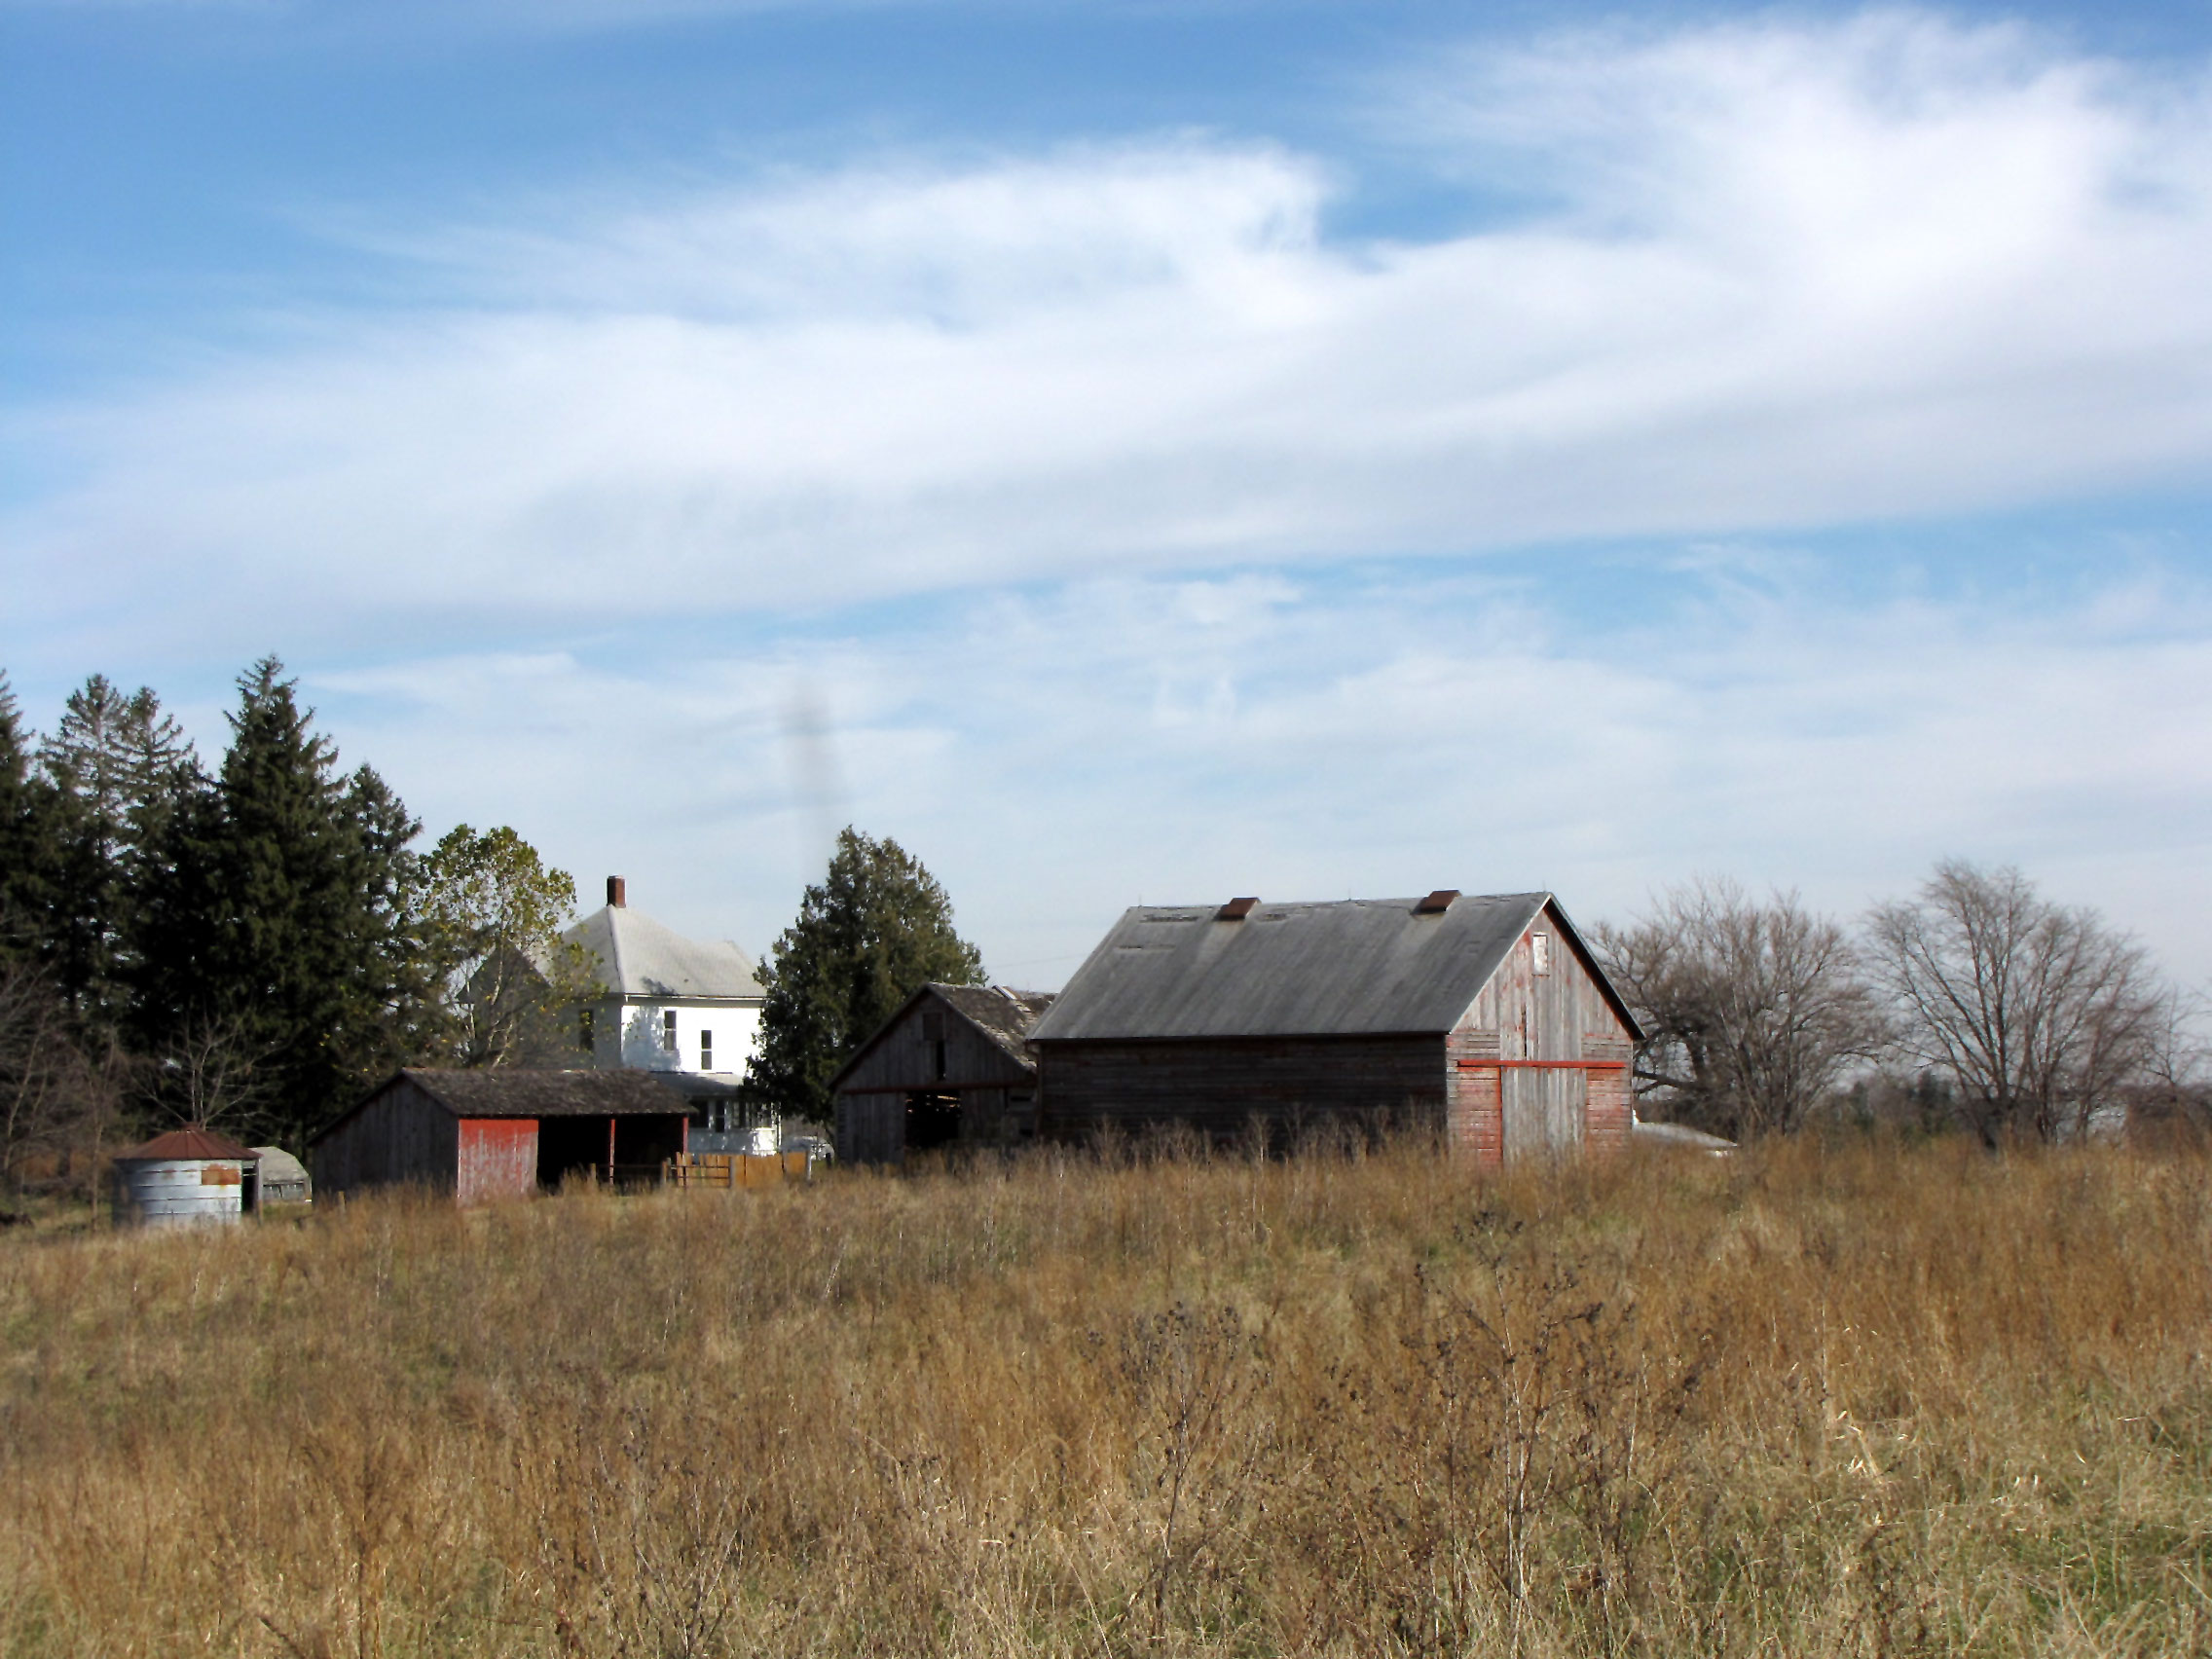 A farmstead of old buildings set in a grassland.